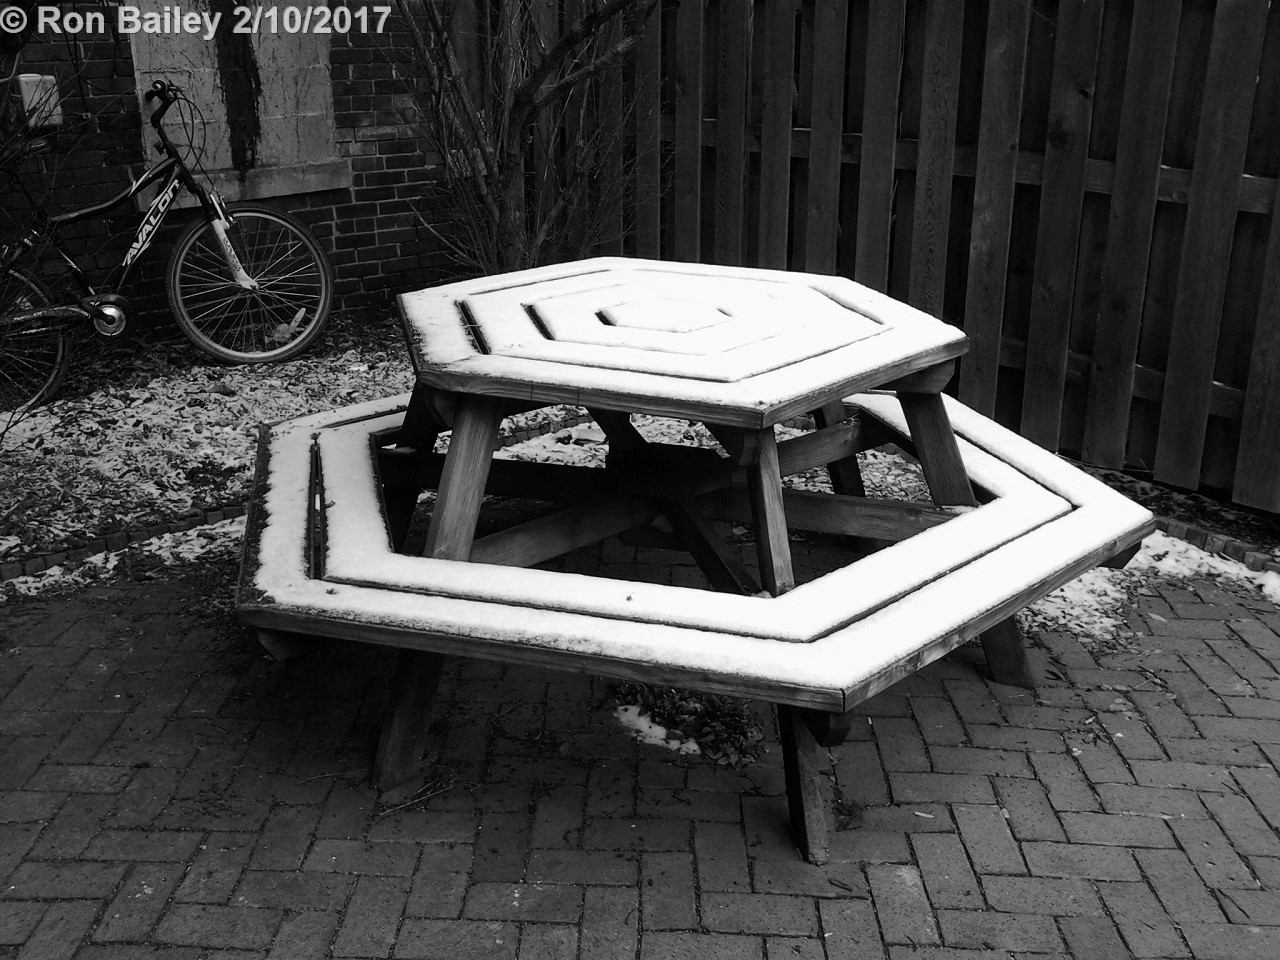 Seats in Black-and-White 2-10-2017 10-23-49 AM